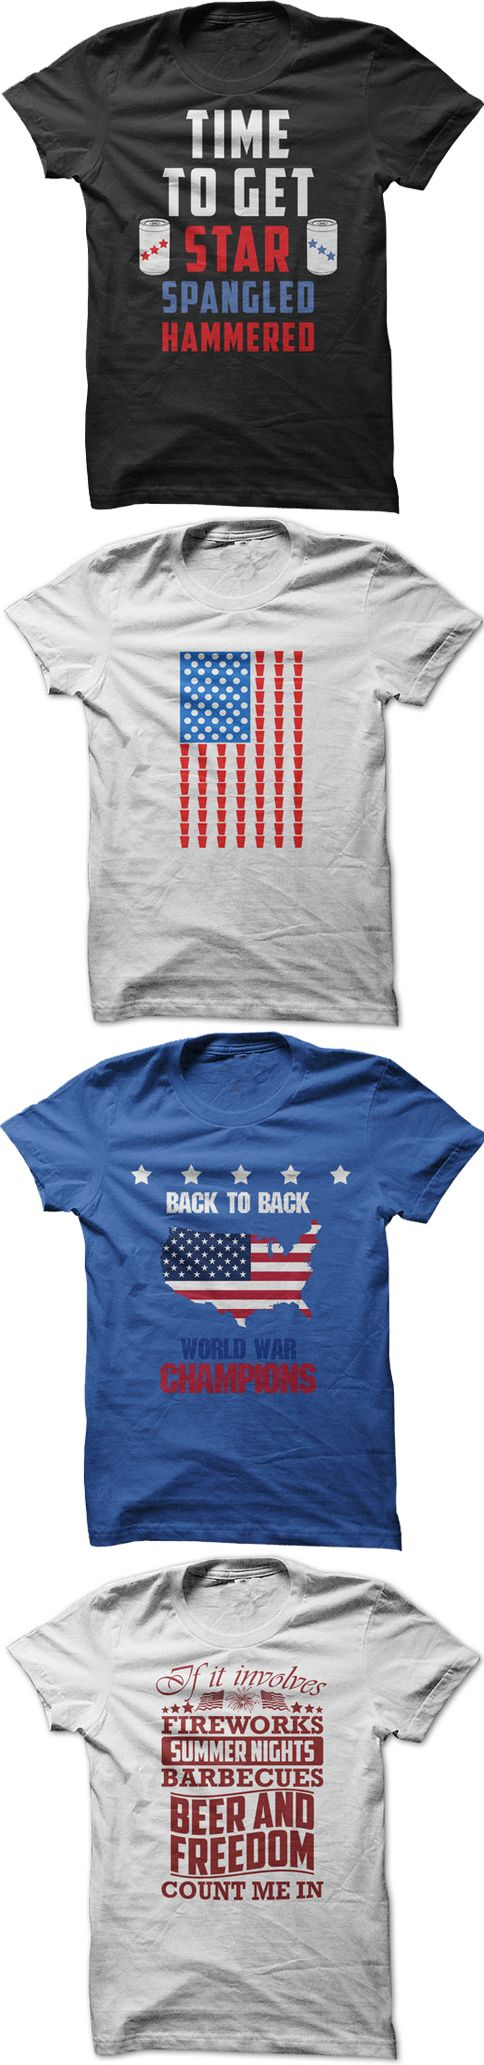 Awesome 4th of July Shirts, Check them Out if you are a True American!